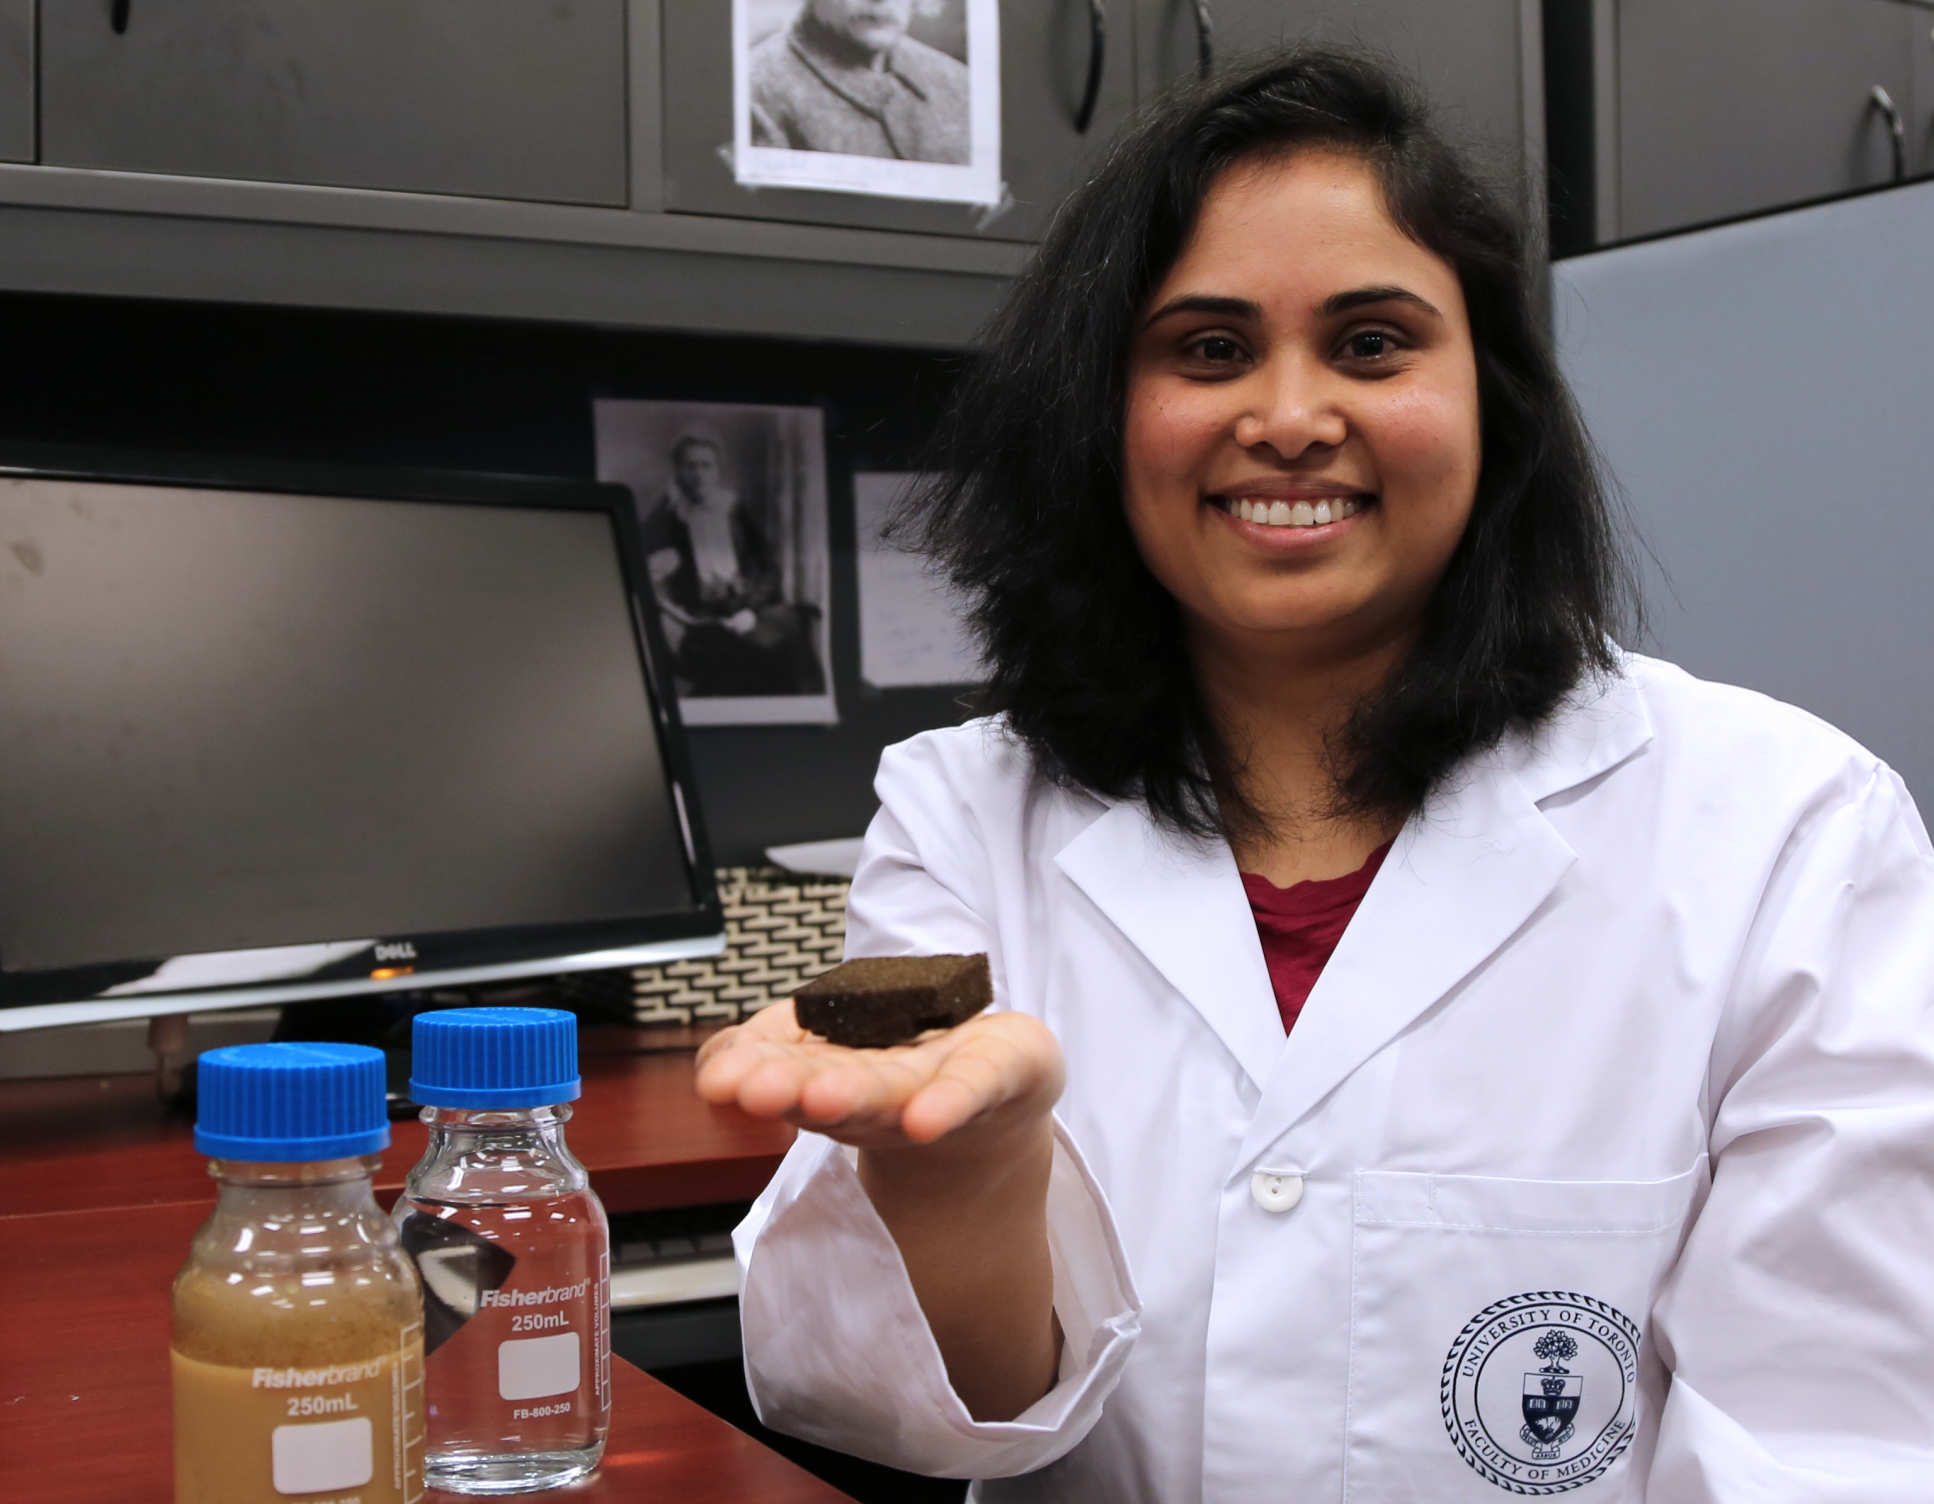 Photo of Dr Cherukupally with the sponge and 'before and after' water samples (one bottle containing brown liquid; the other, clear, clean liquid after sponge treatment) in her lab at the University of Toronto